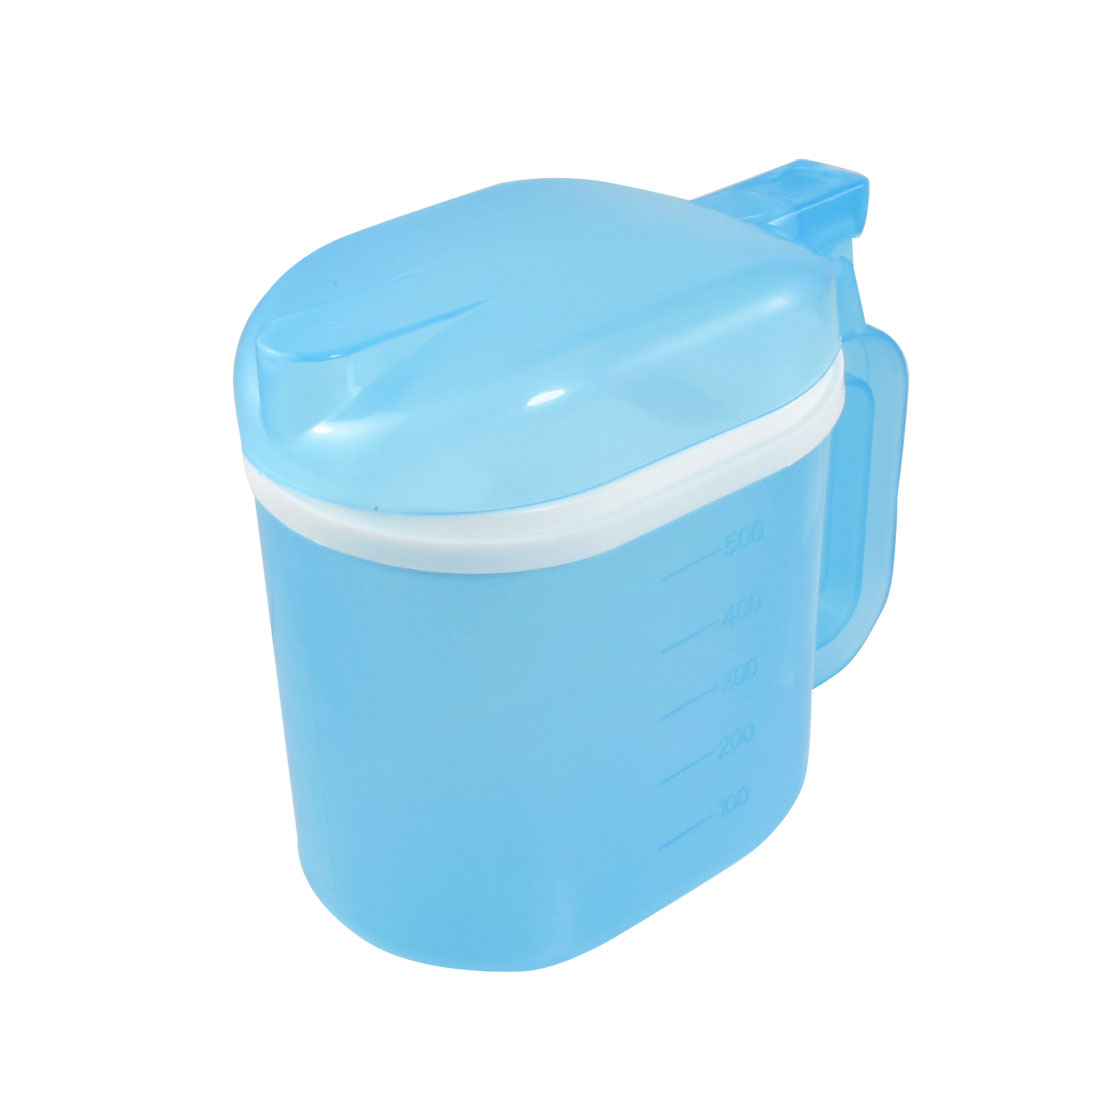 Kitchen 500ml Capacity Blue Clear Plastic Vinegar Oil Pot Holder